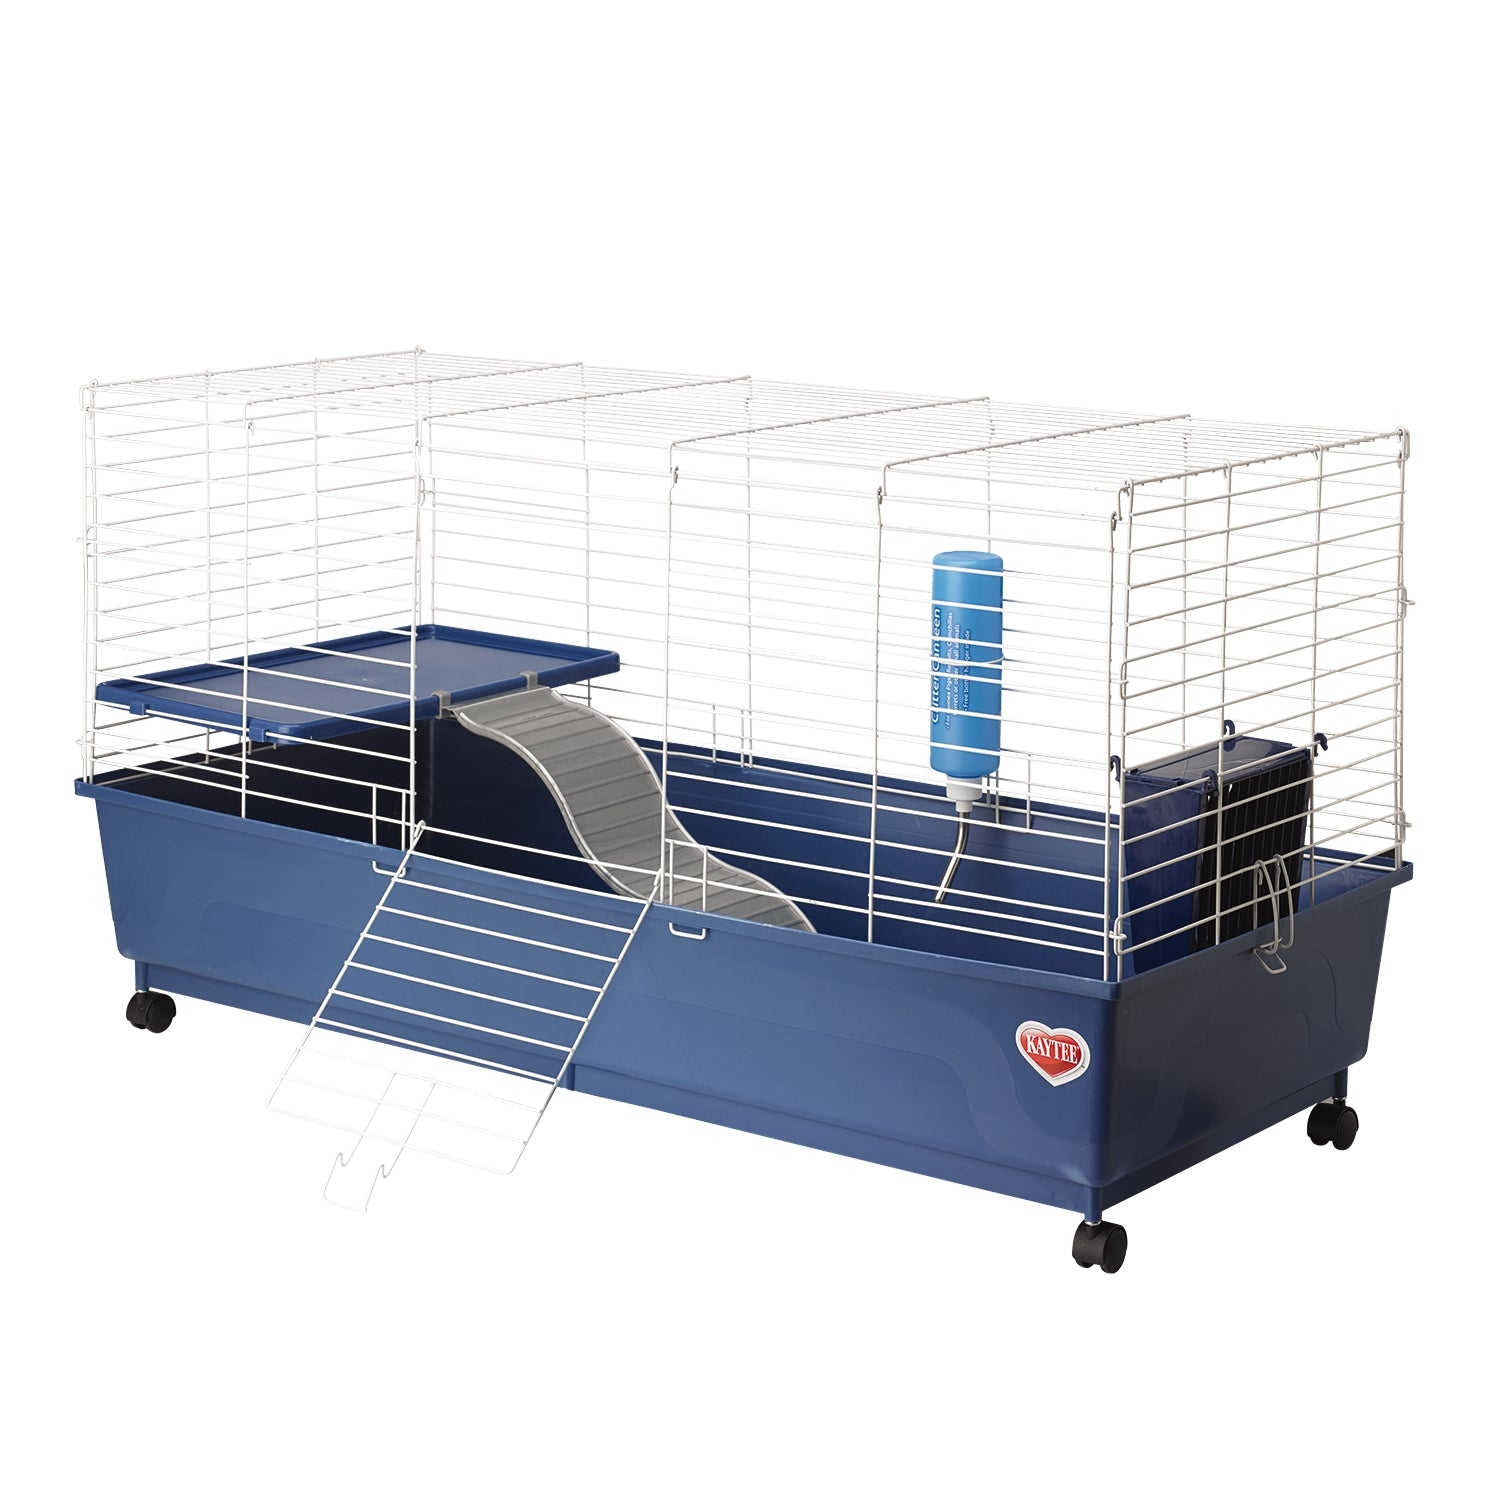 Kaytee My First Home Deluxe Rabbit 2-Level Cage with Wheels